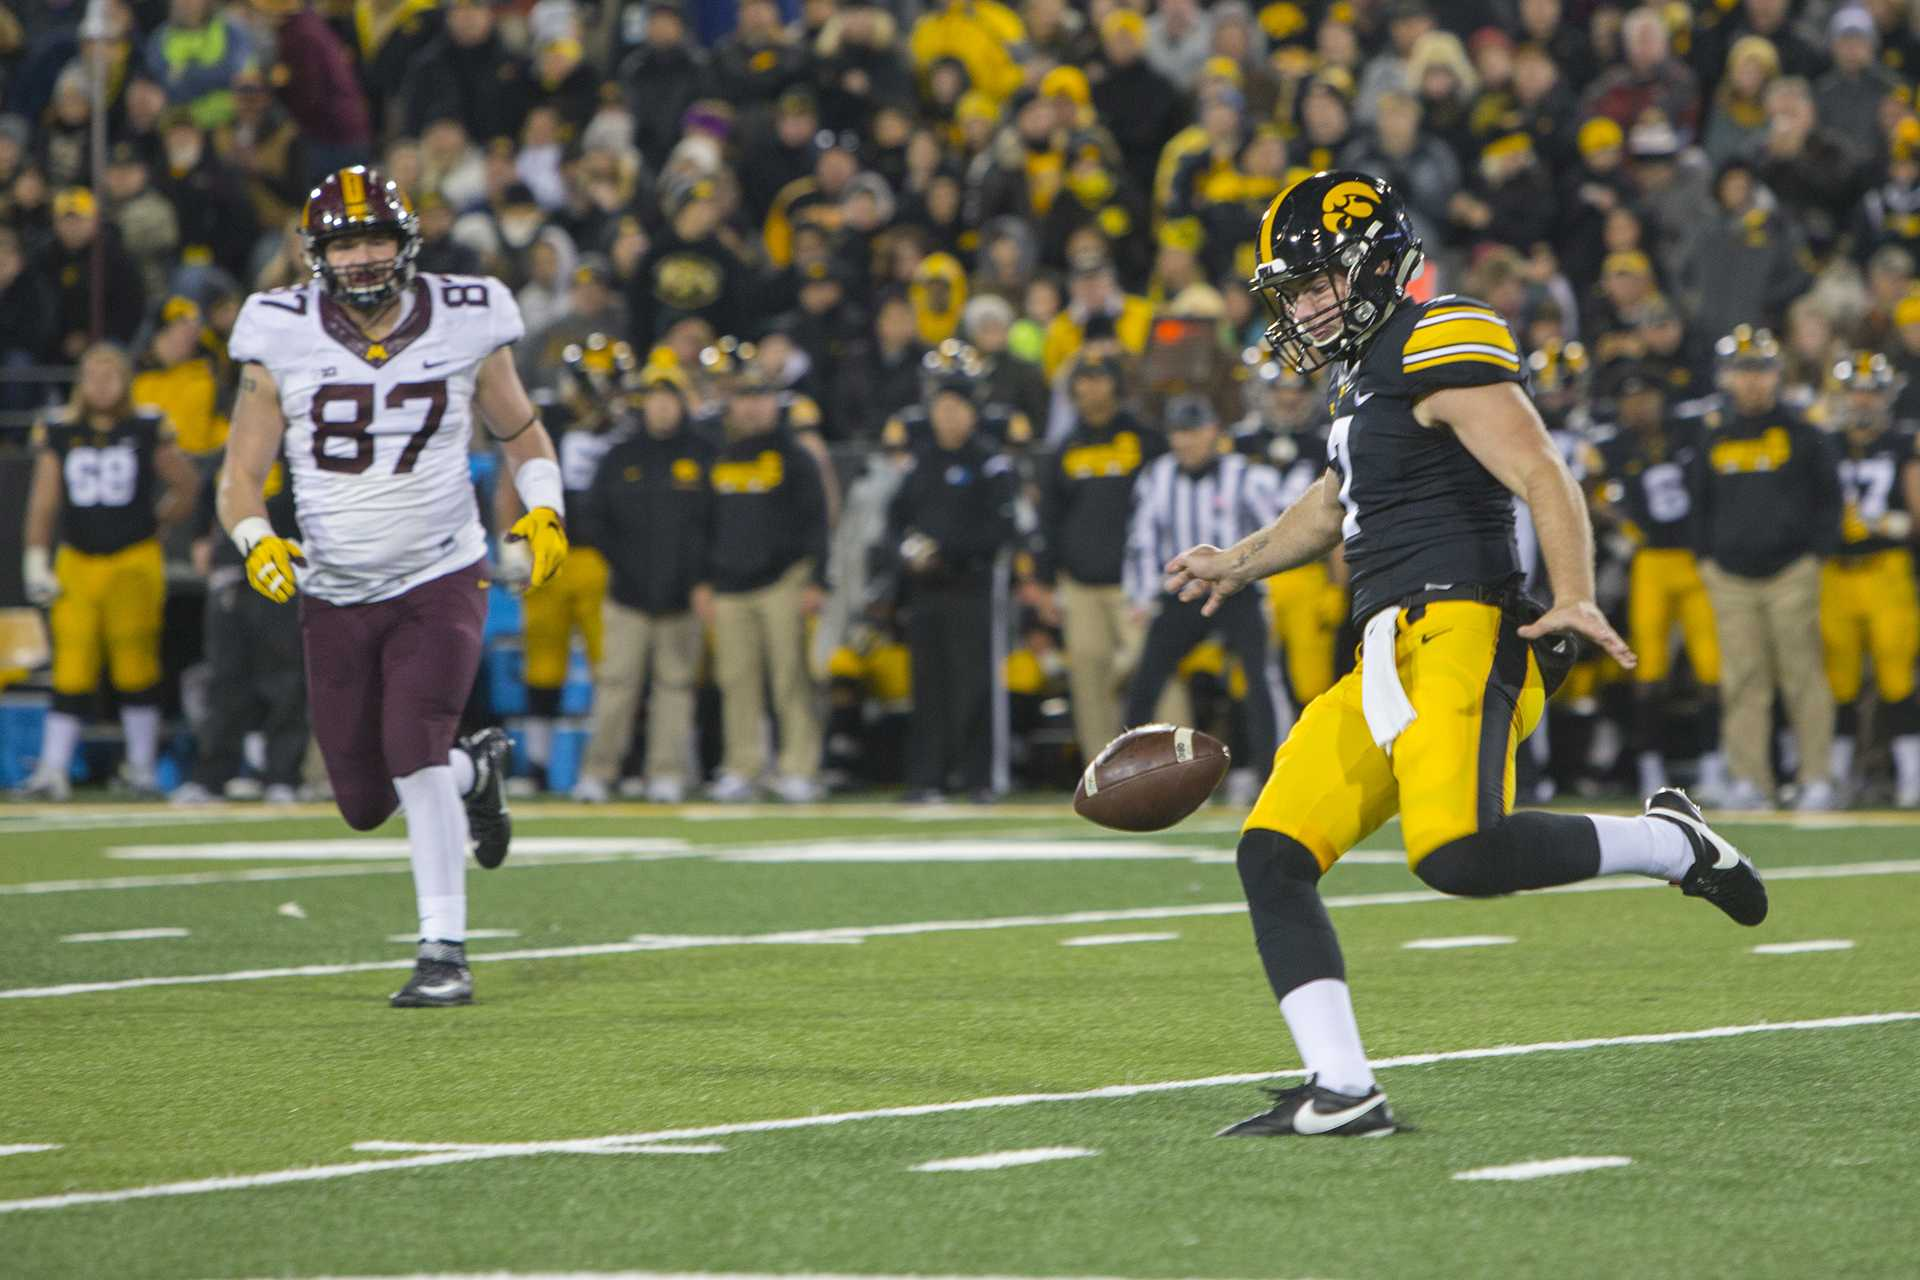 Iowa's Colten Rastetter punts during the Iowa/Minnesota football game at Kinnick Stadium on Saturday, Oct. 28, 2017. The Hawkeyes defeated the Golden Gophers, 17-10, to keep the Floyd of Rosedale trophy.